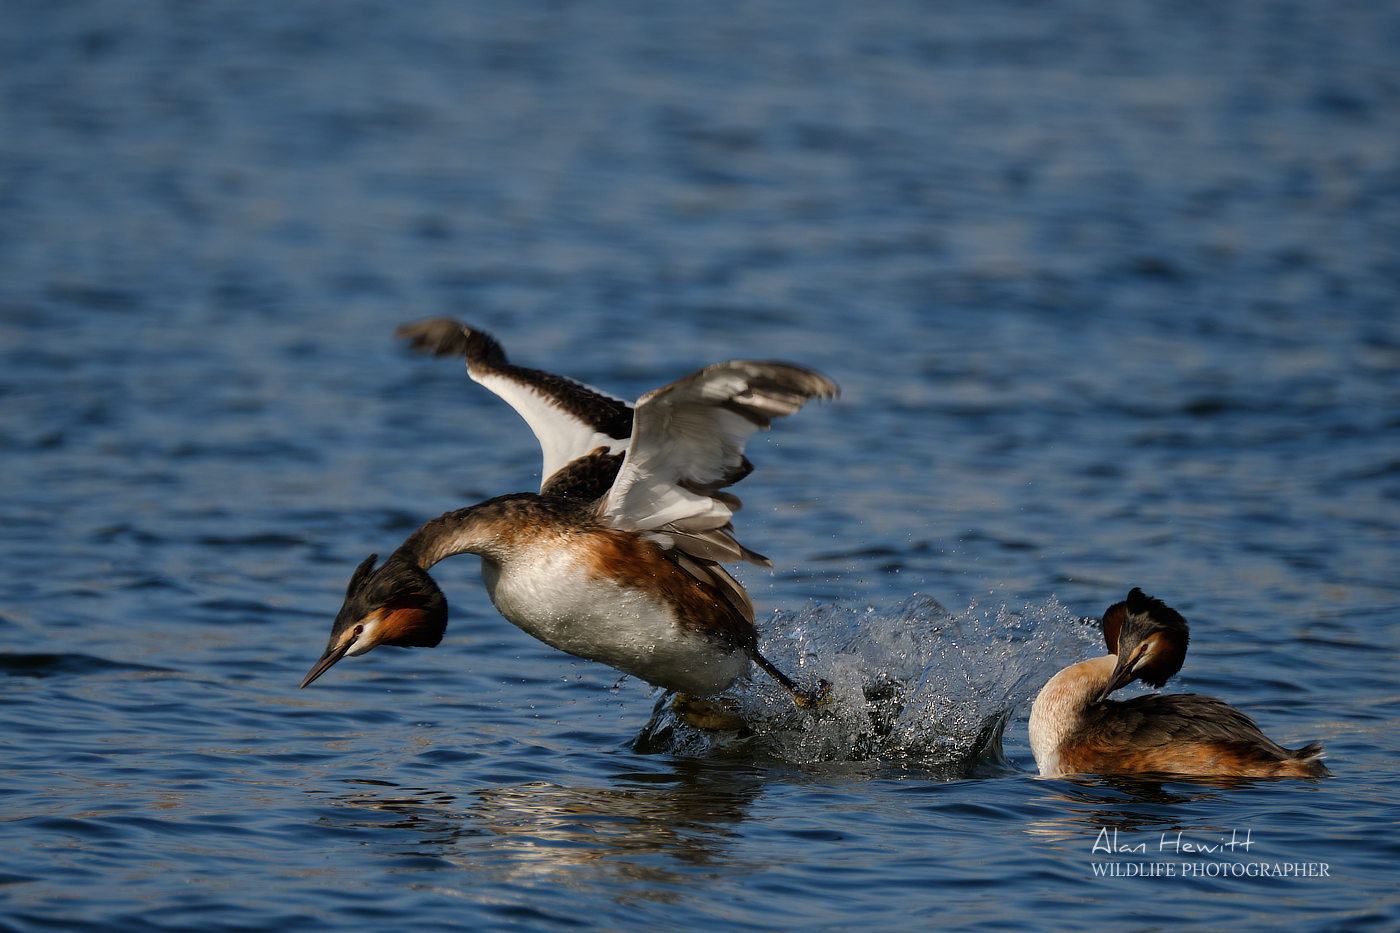 Great Crested Grebe Alan Hewitt Photography